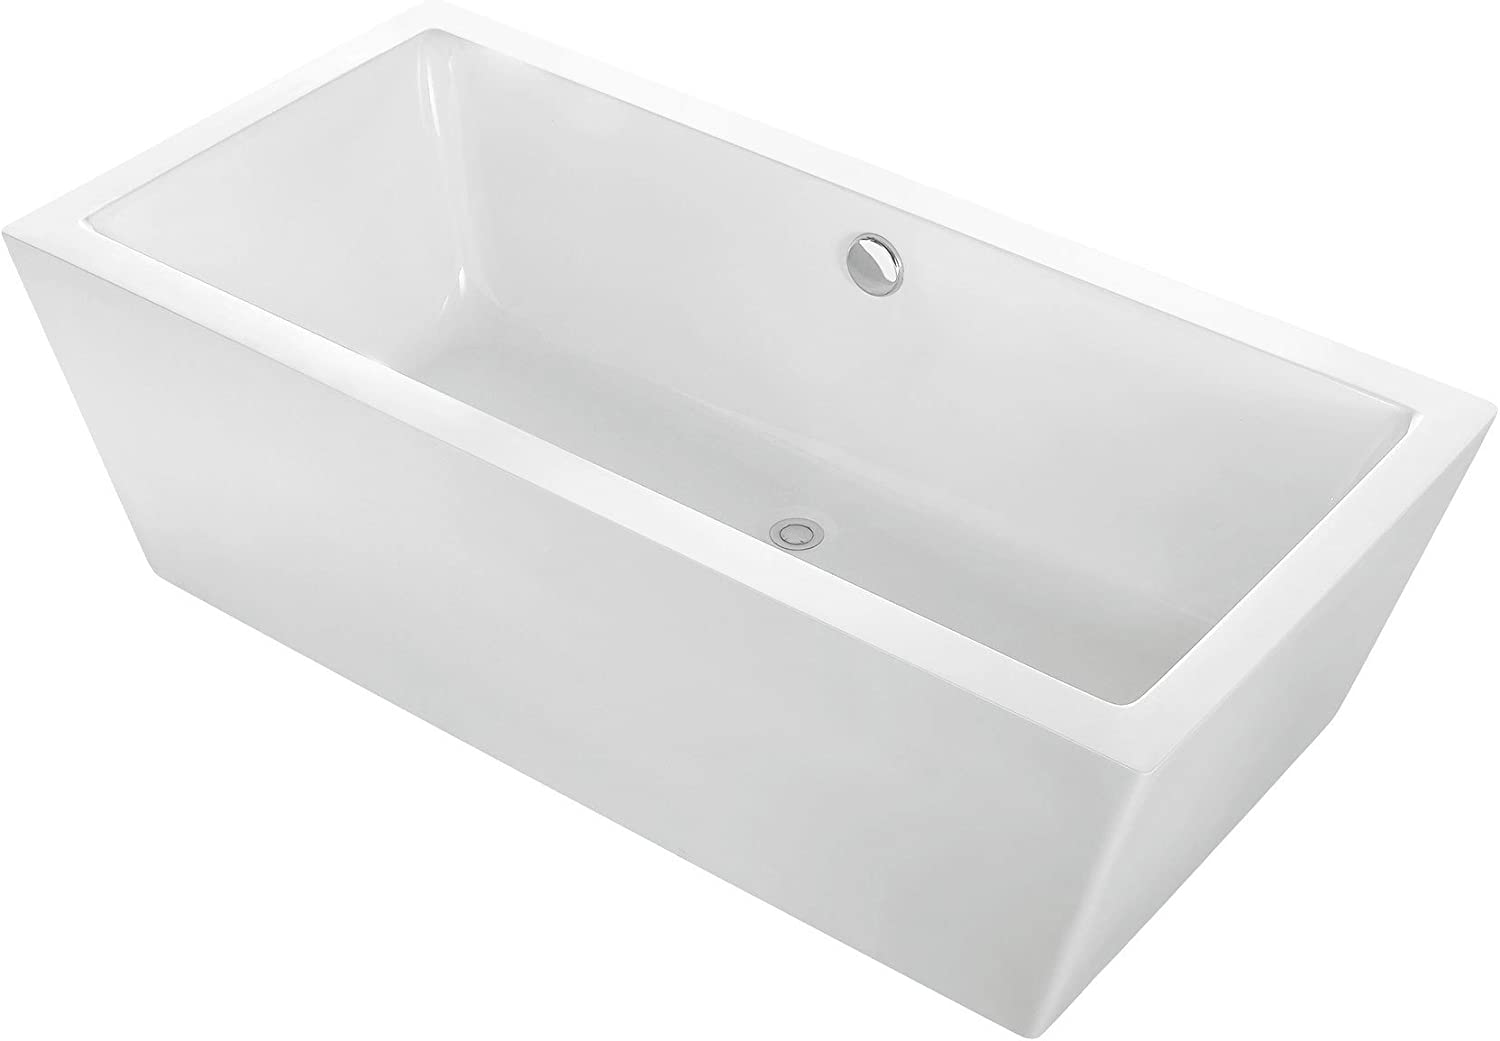 MAYKKE Alsen 60 Modern Rectangular Acrylic Freestanding Bathtub Sloped White Stand Alone Tub in Bathroom Shower, cUPC Certified, Drain and Overflow Assembly Included XDA1437001